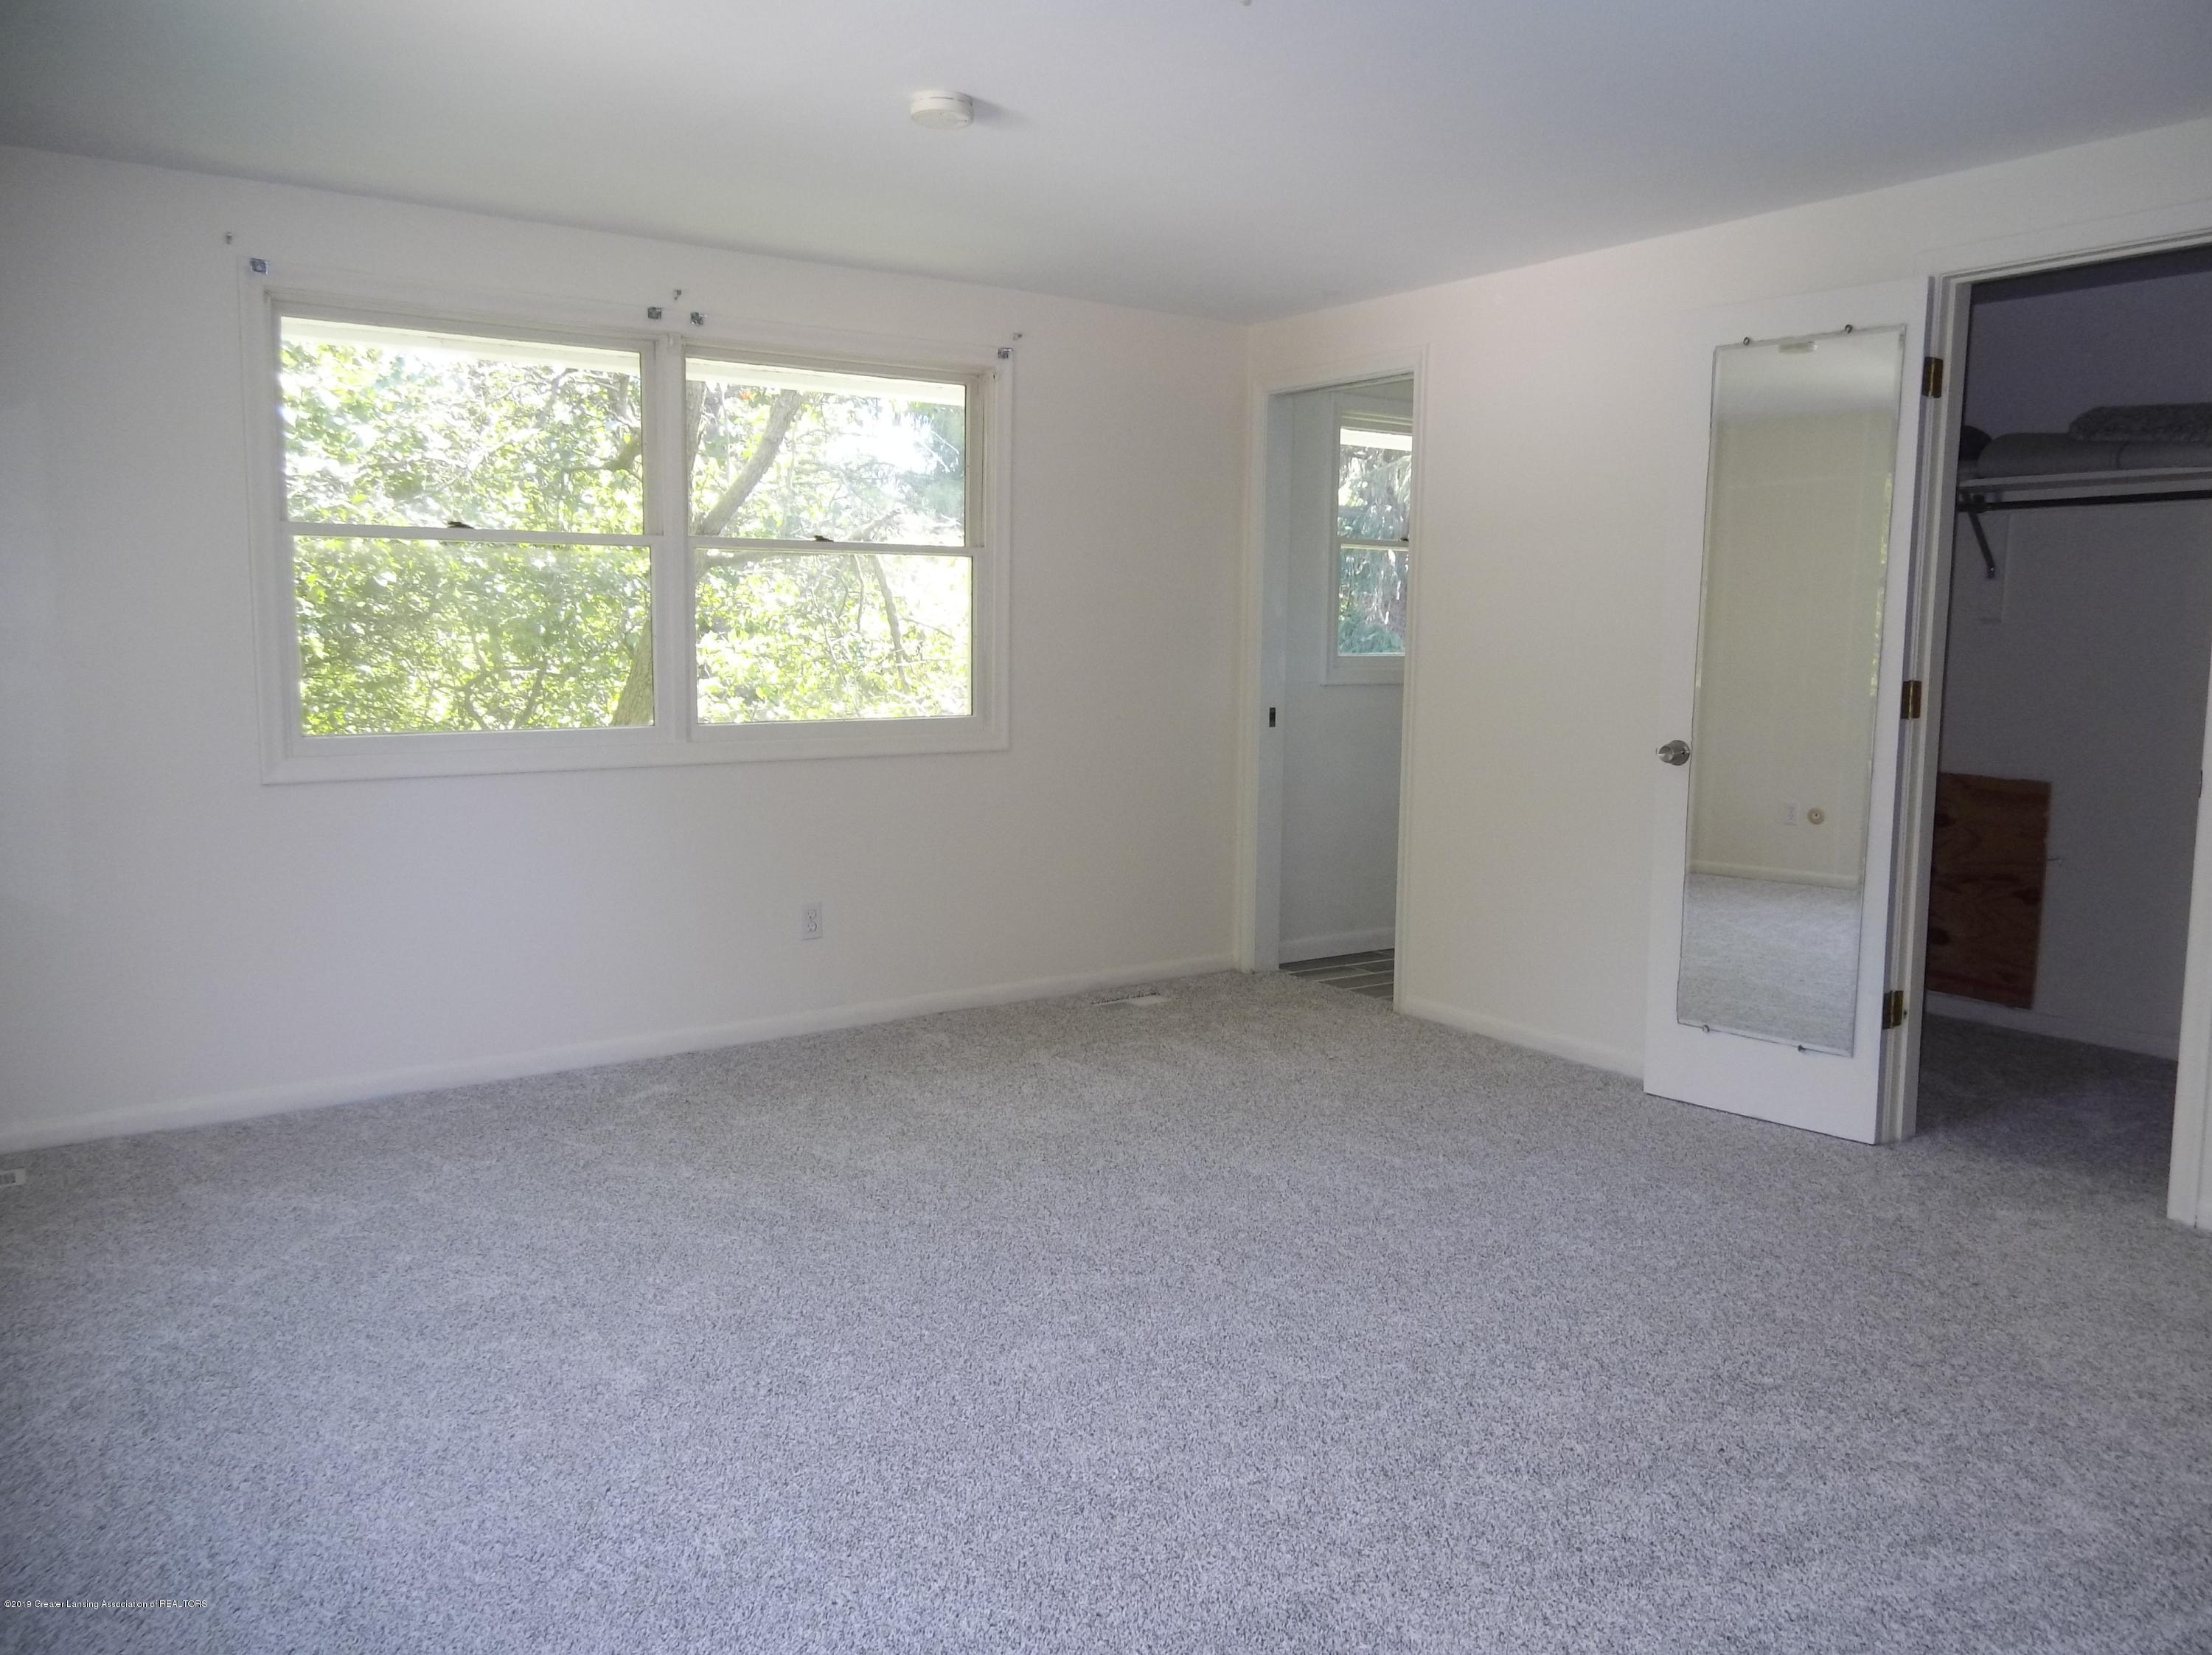 2971 Briarcliff Dr - Bedroom - 13